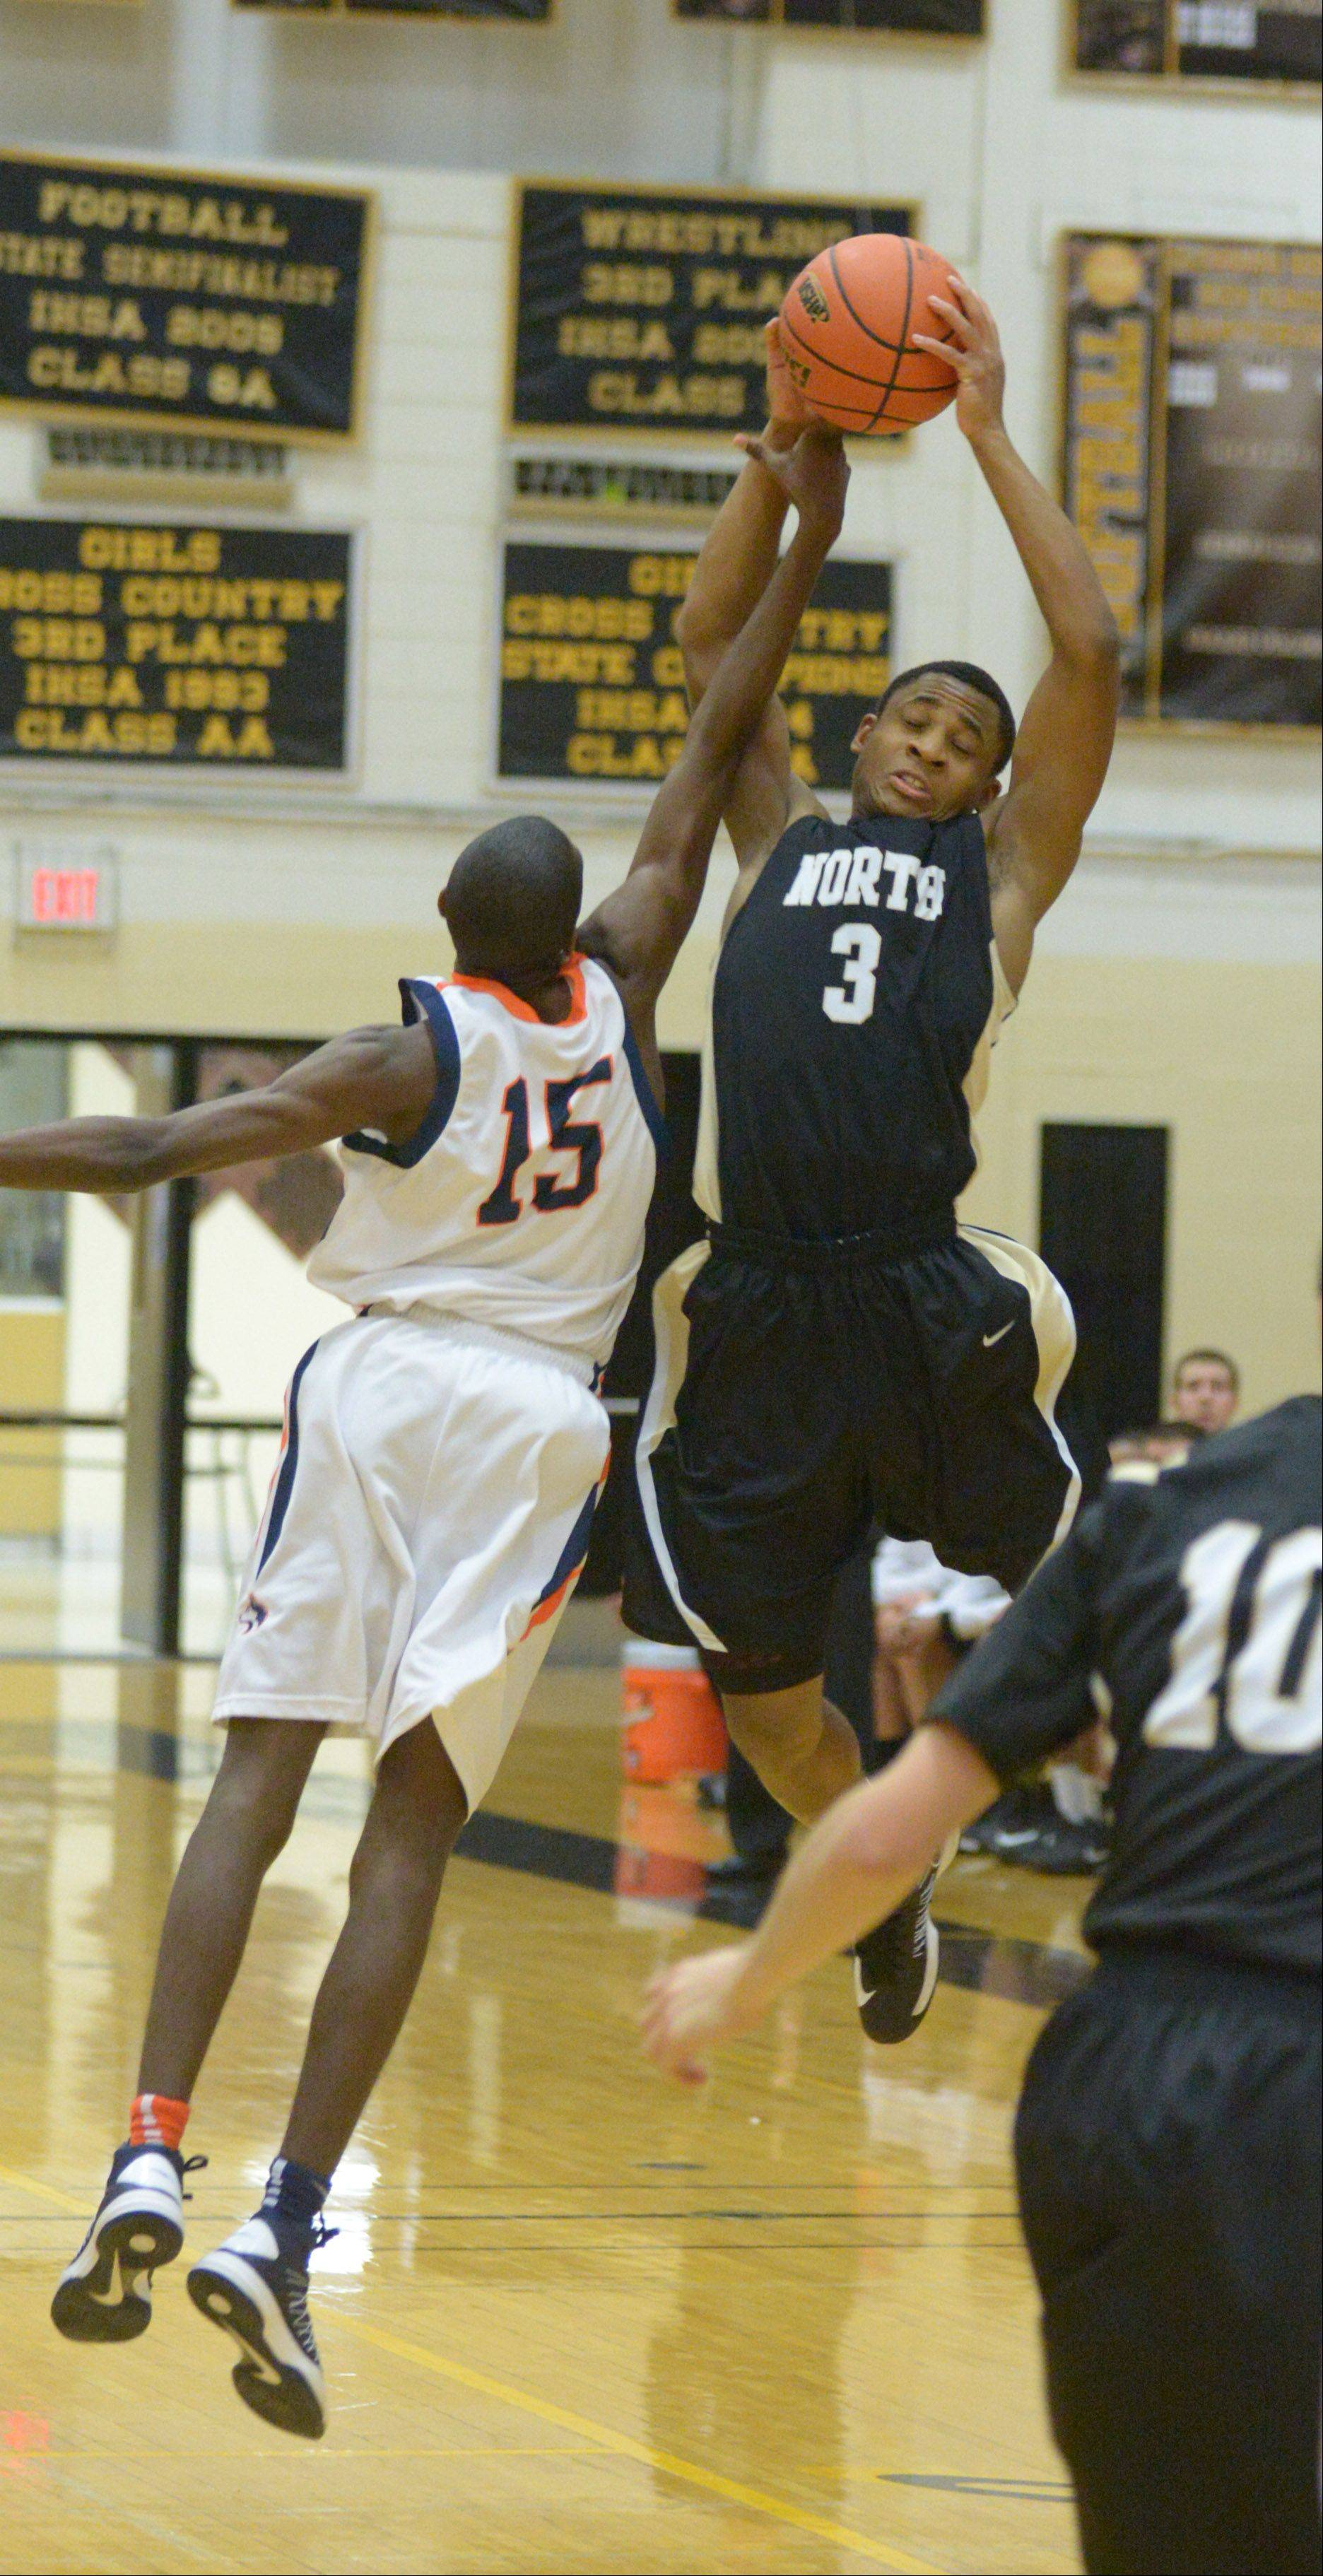 Jason Gant of Oak Park-river Forest tries to block a shot from Justin Jackson of Glenbard North .